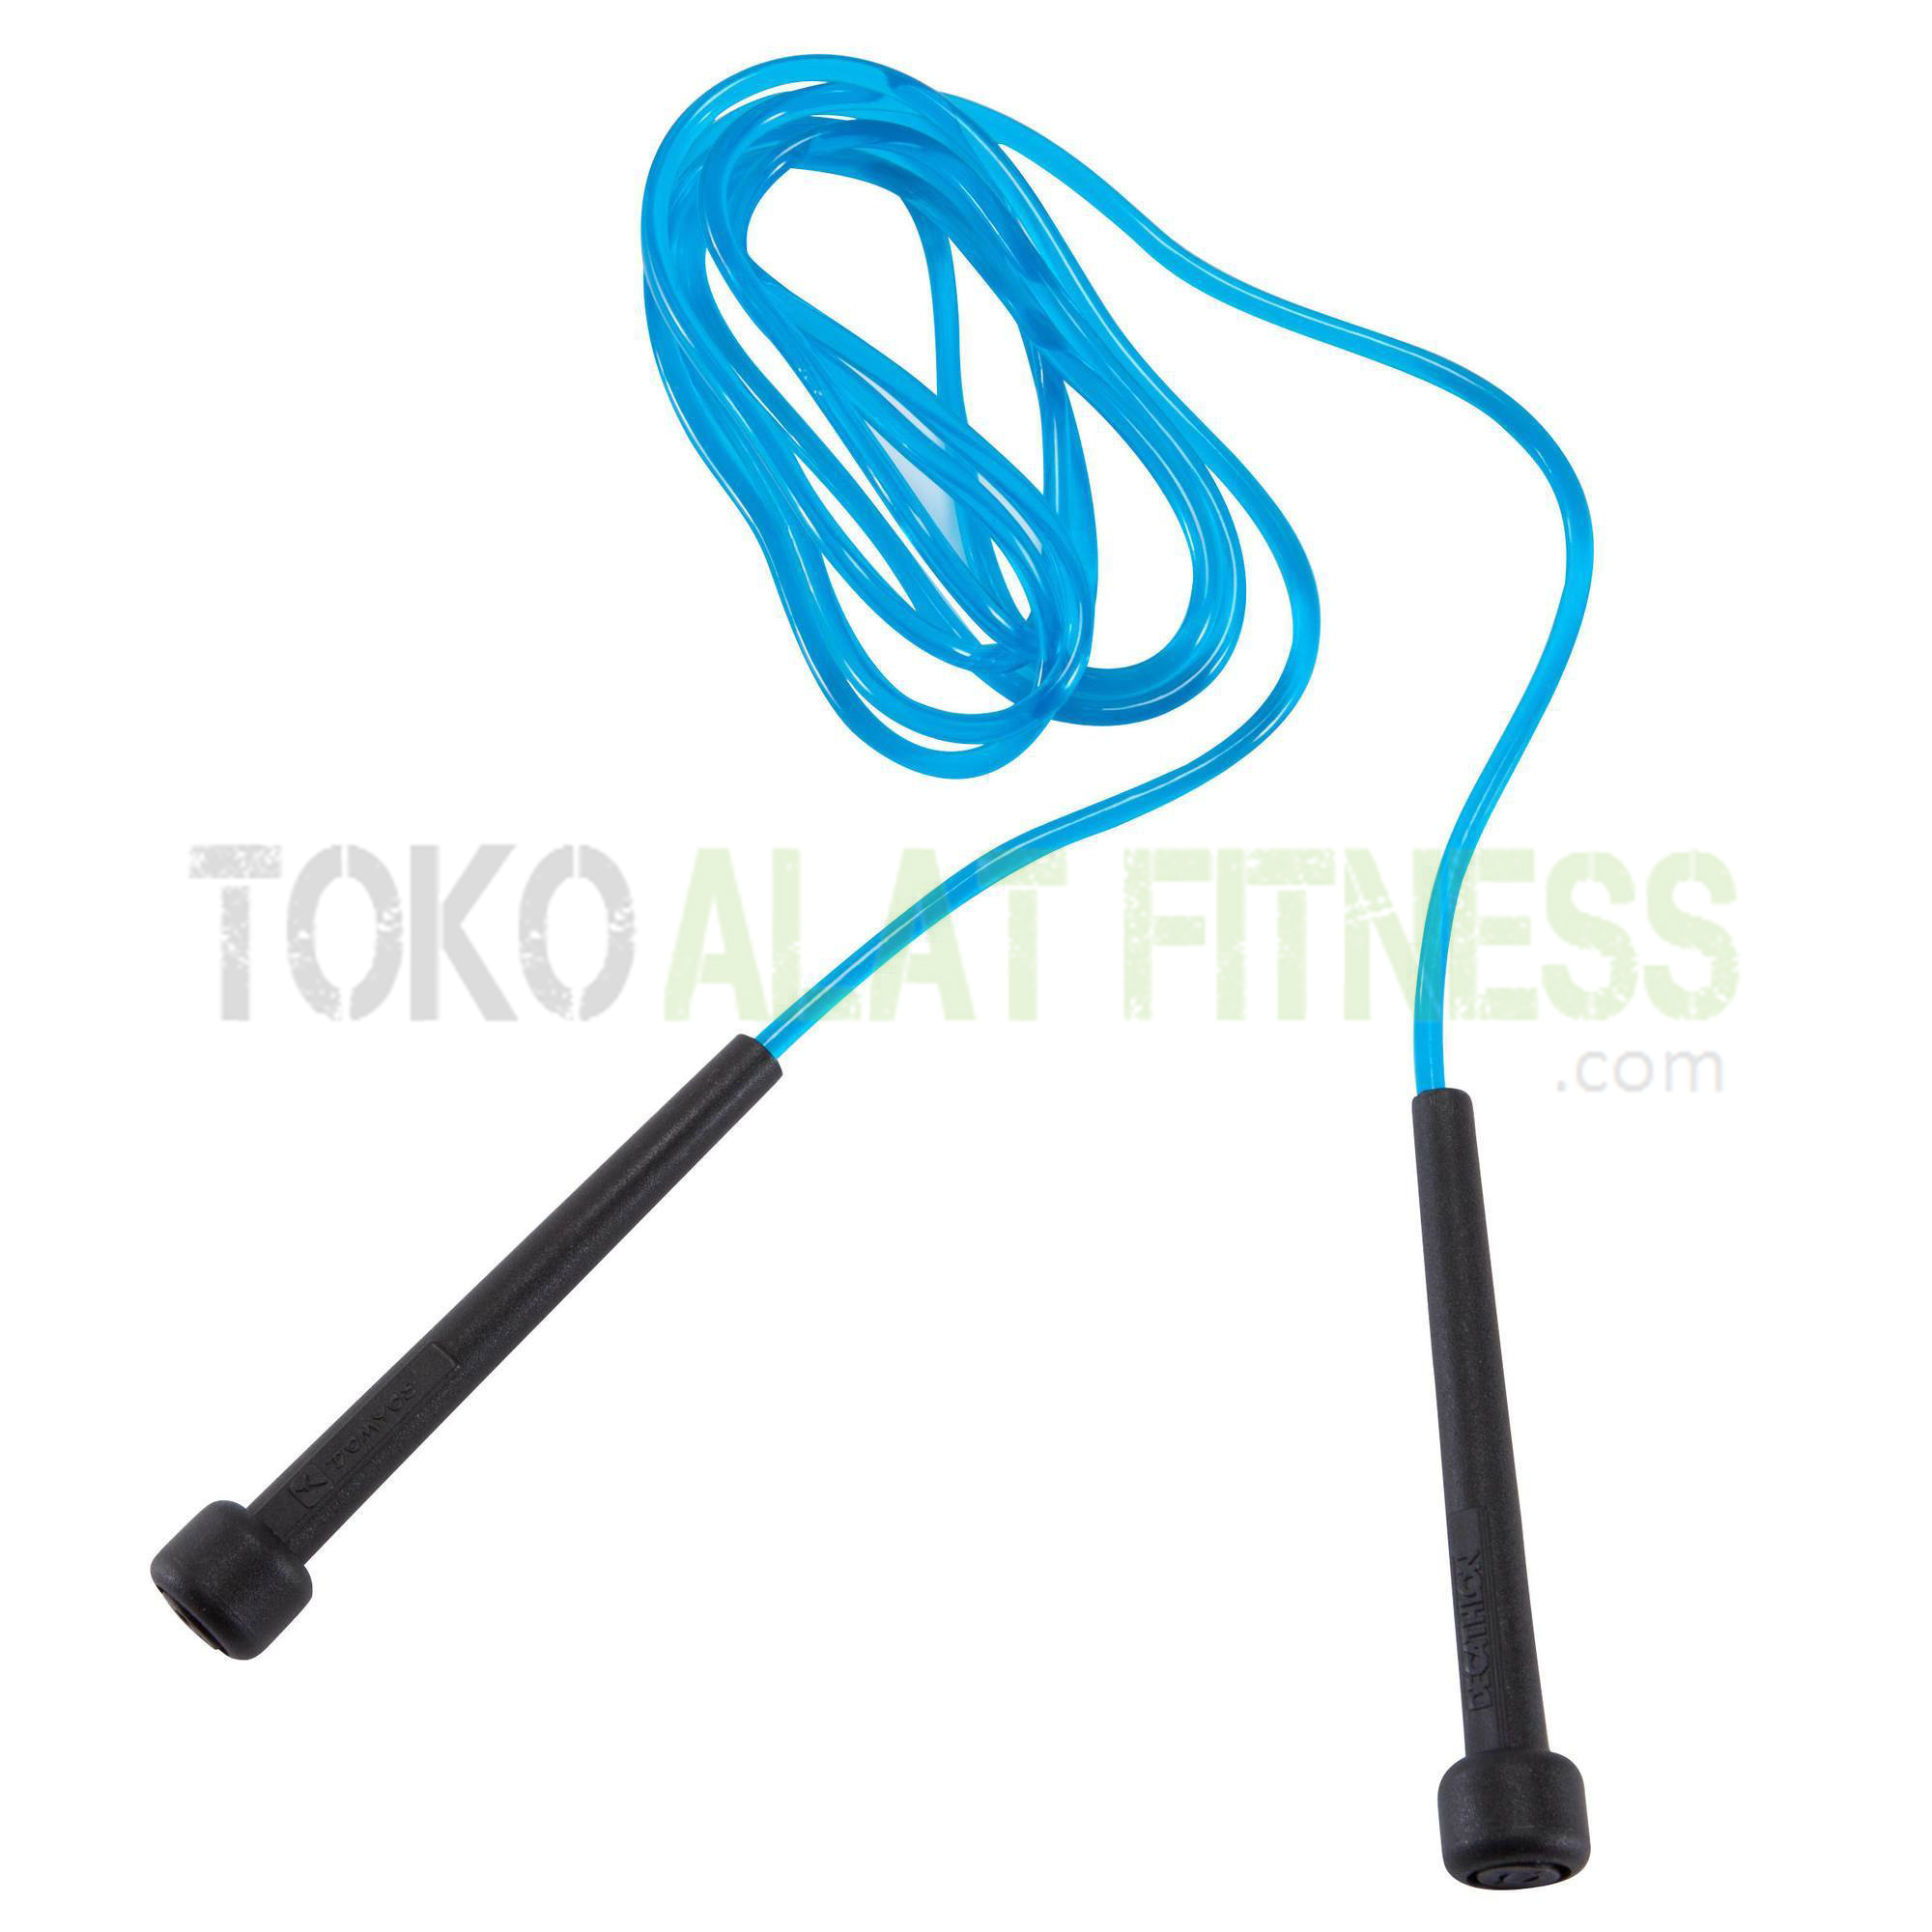 jump rope wtm - Simple Jump Rope Biru Domyos